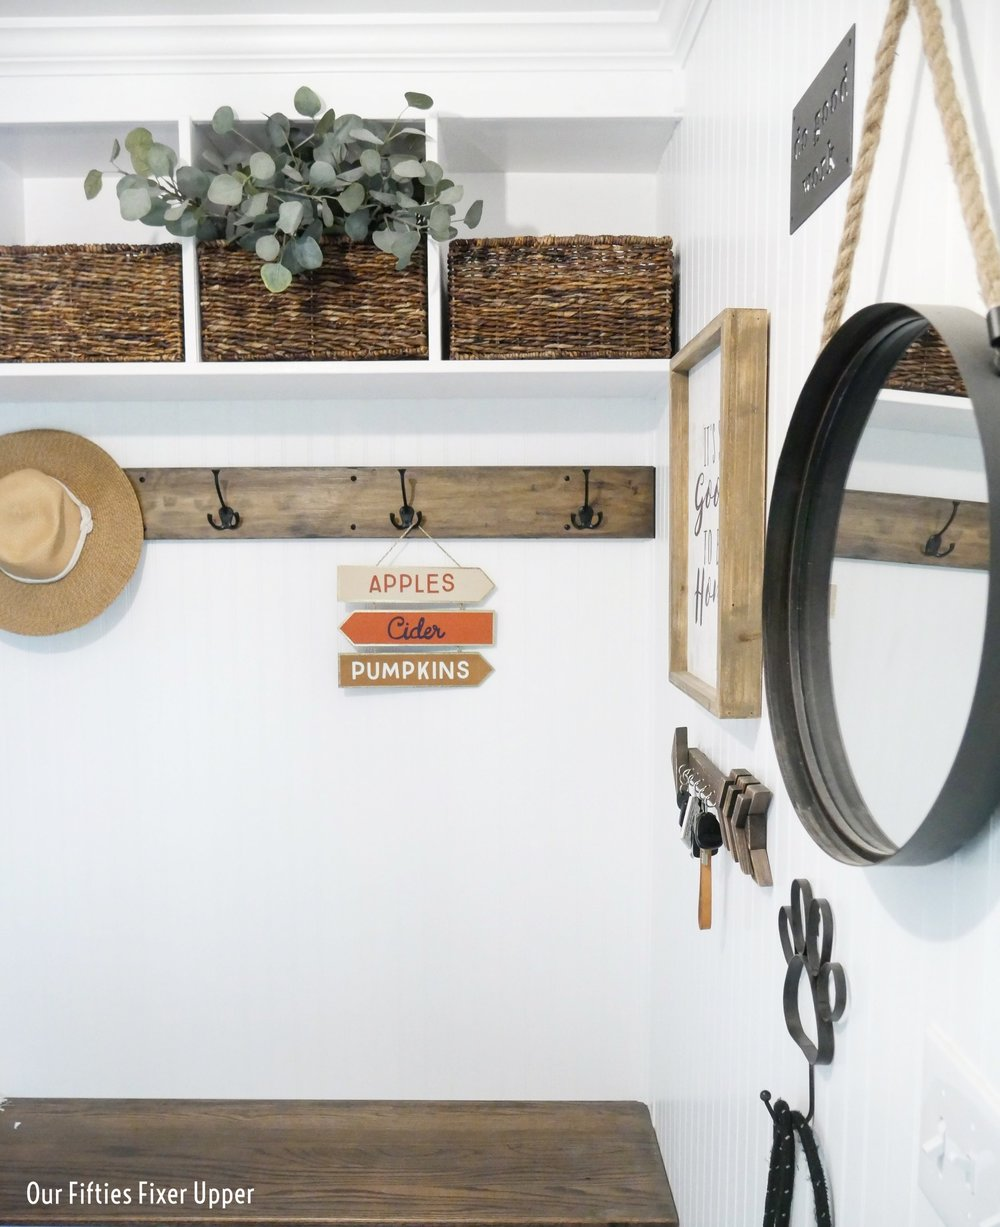 Our Fifties Fixer Upper: Making a Mudroom